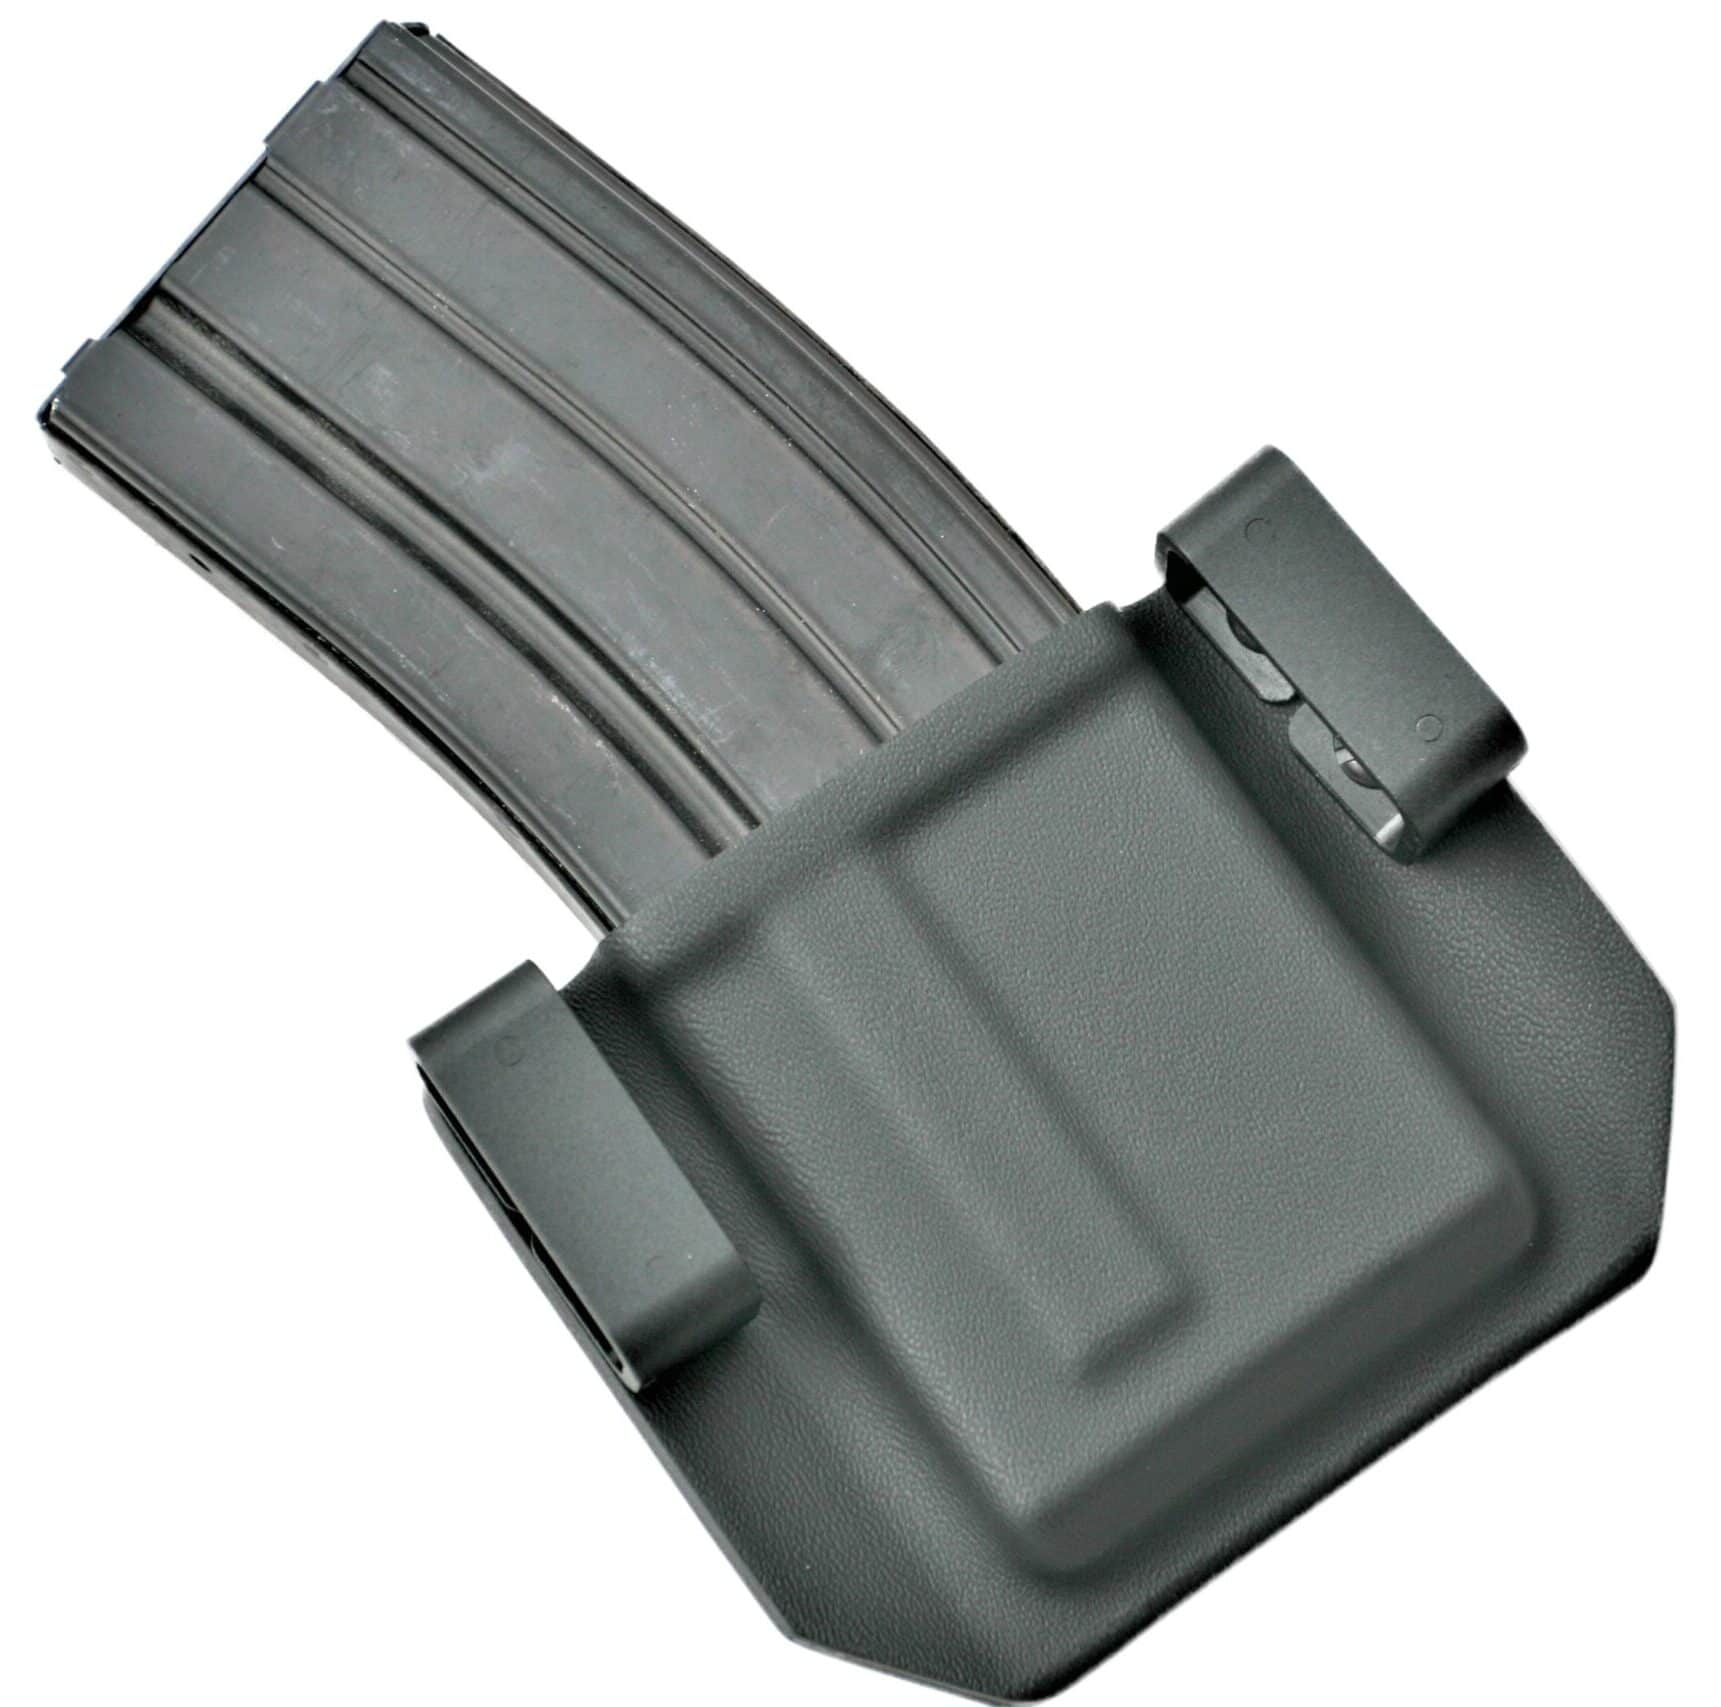 Universal AR-15 mag holder / pouch